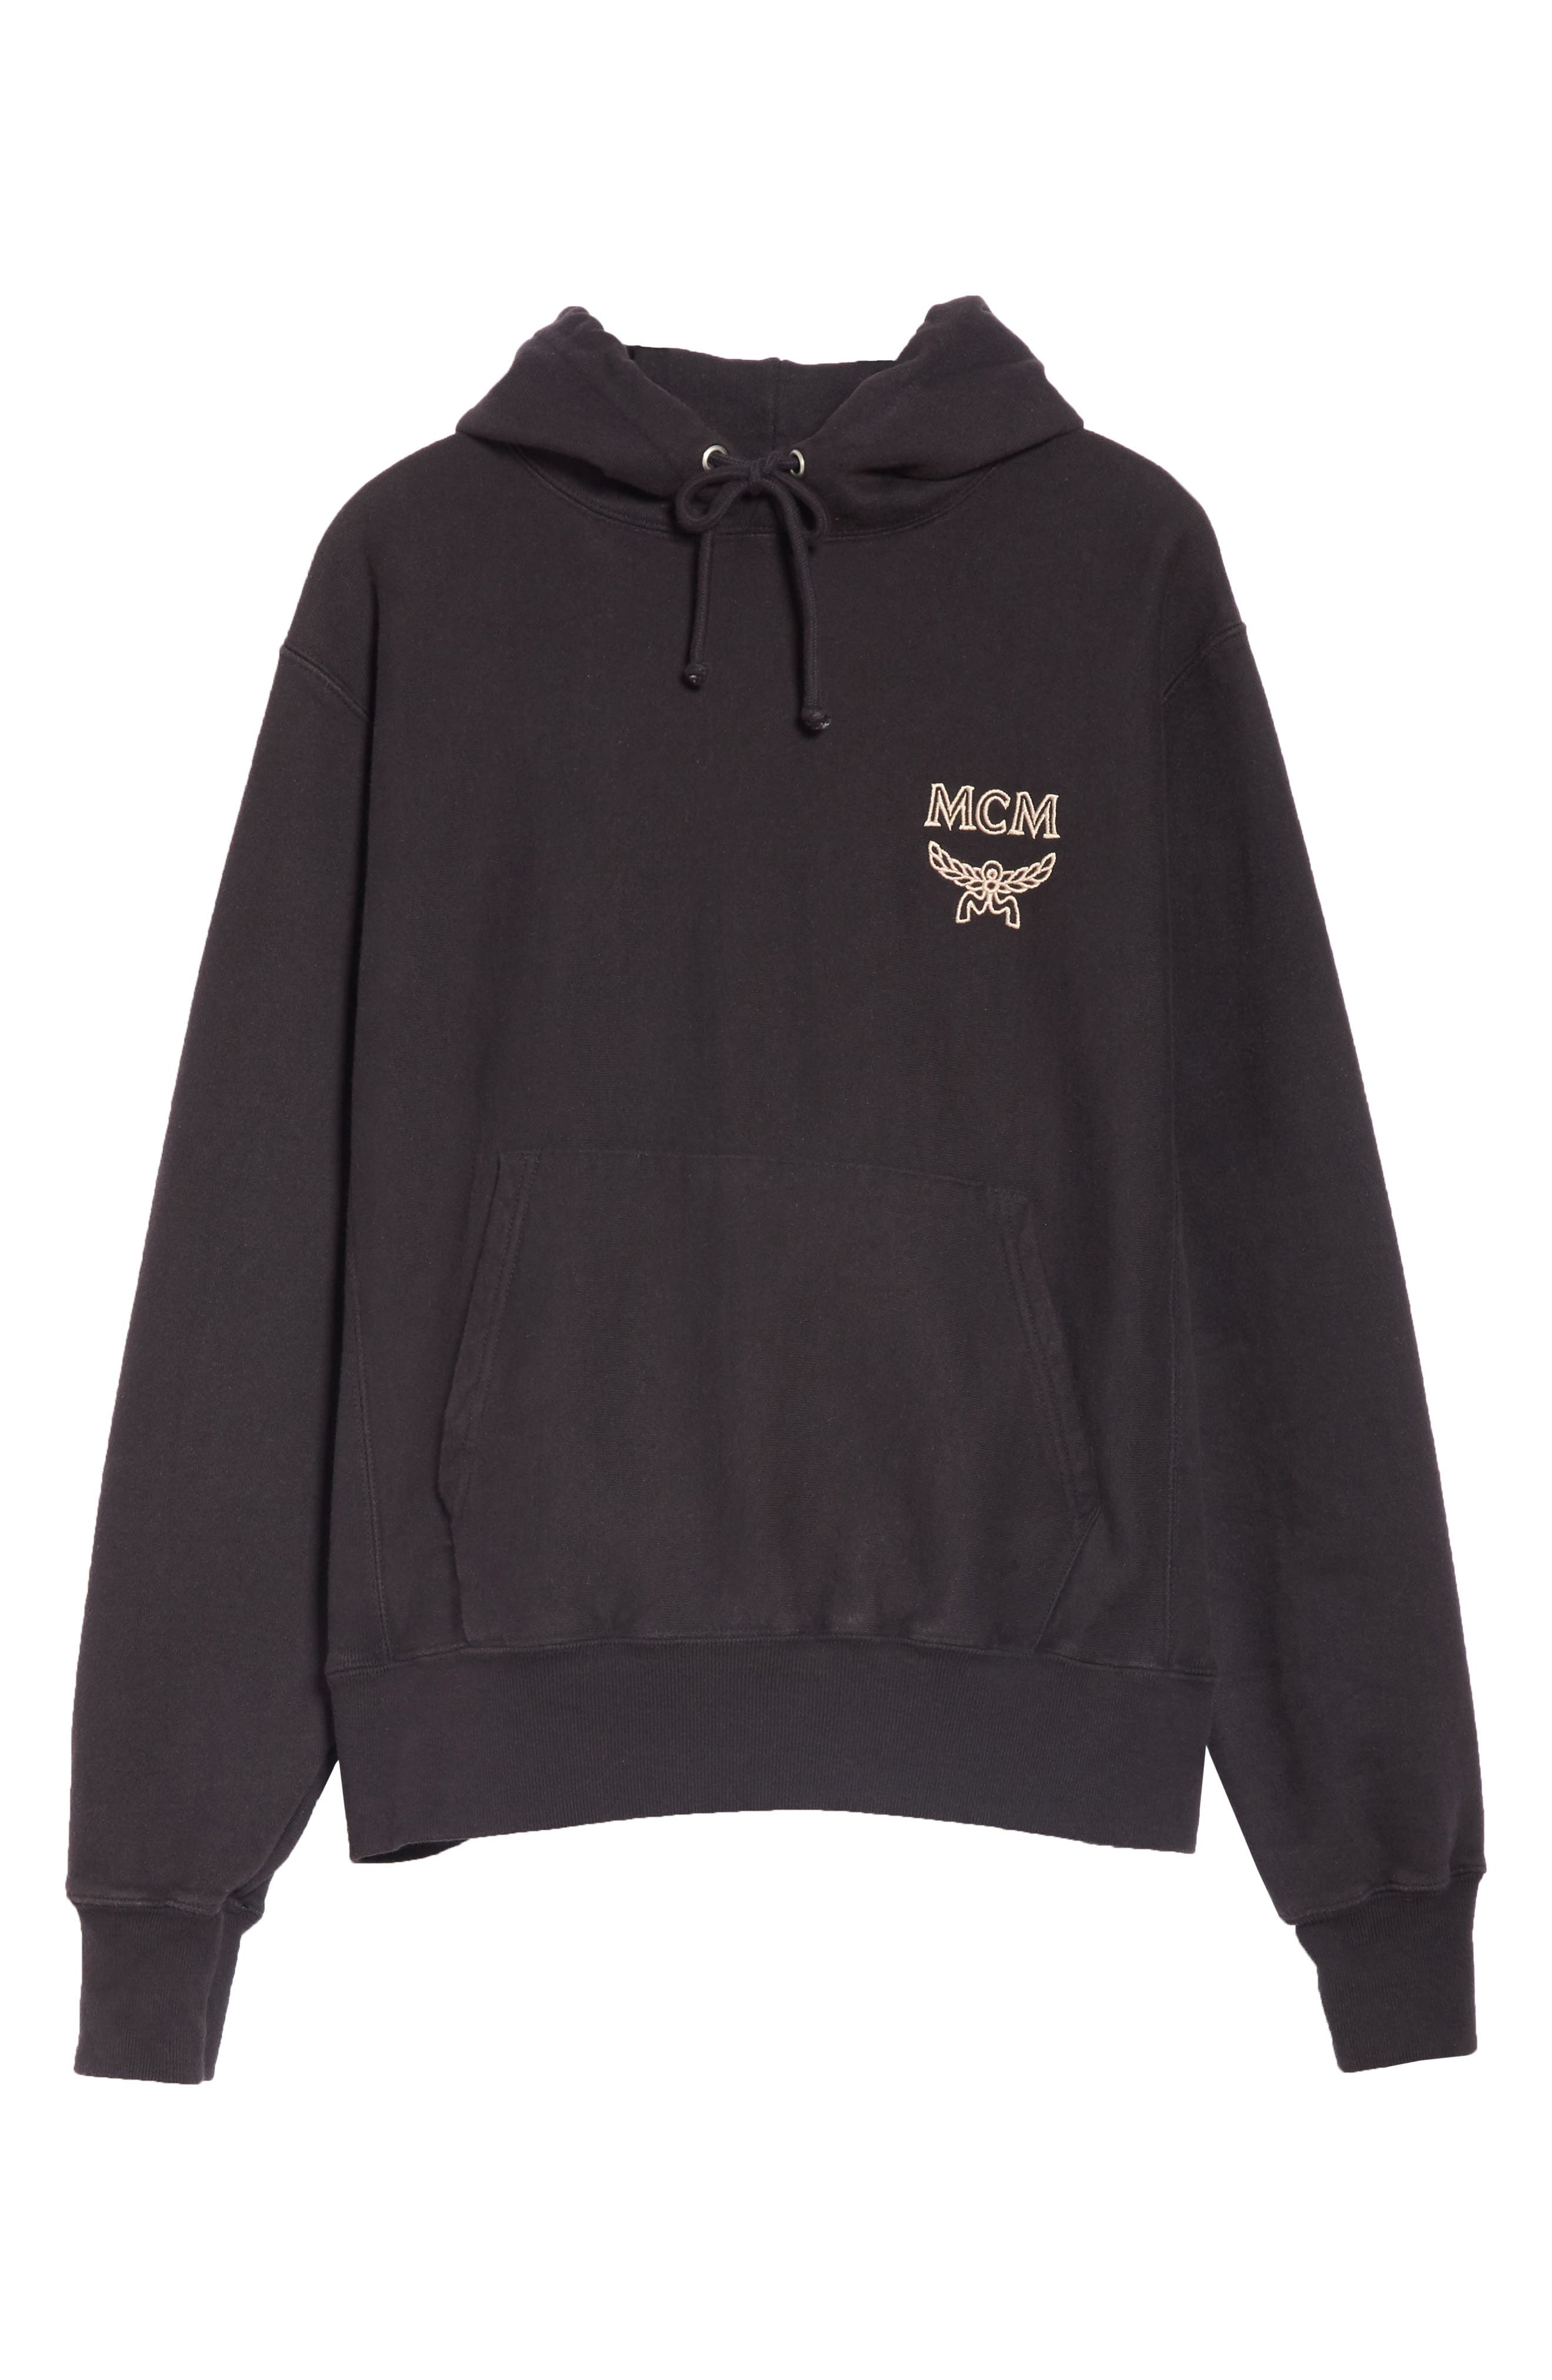 x MCM Pullover Hoodie,                         Main,                         color, 001